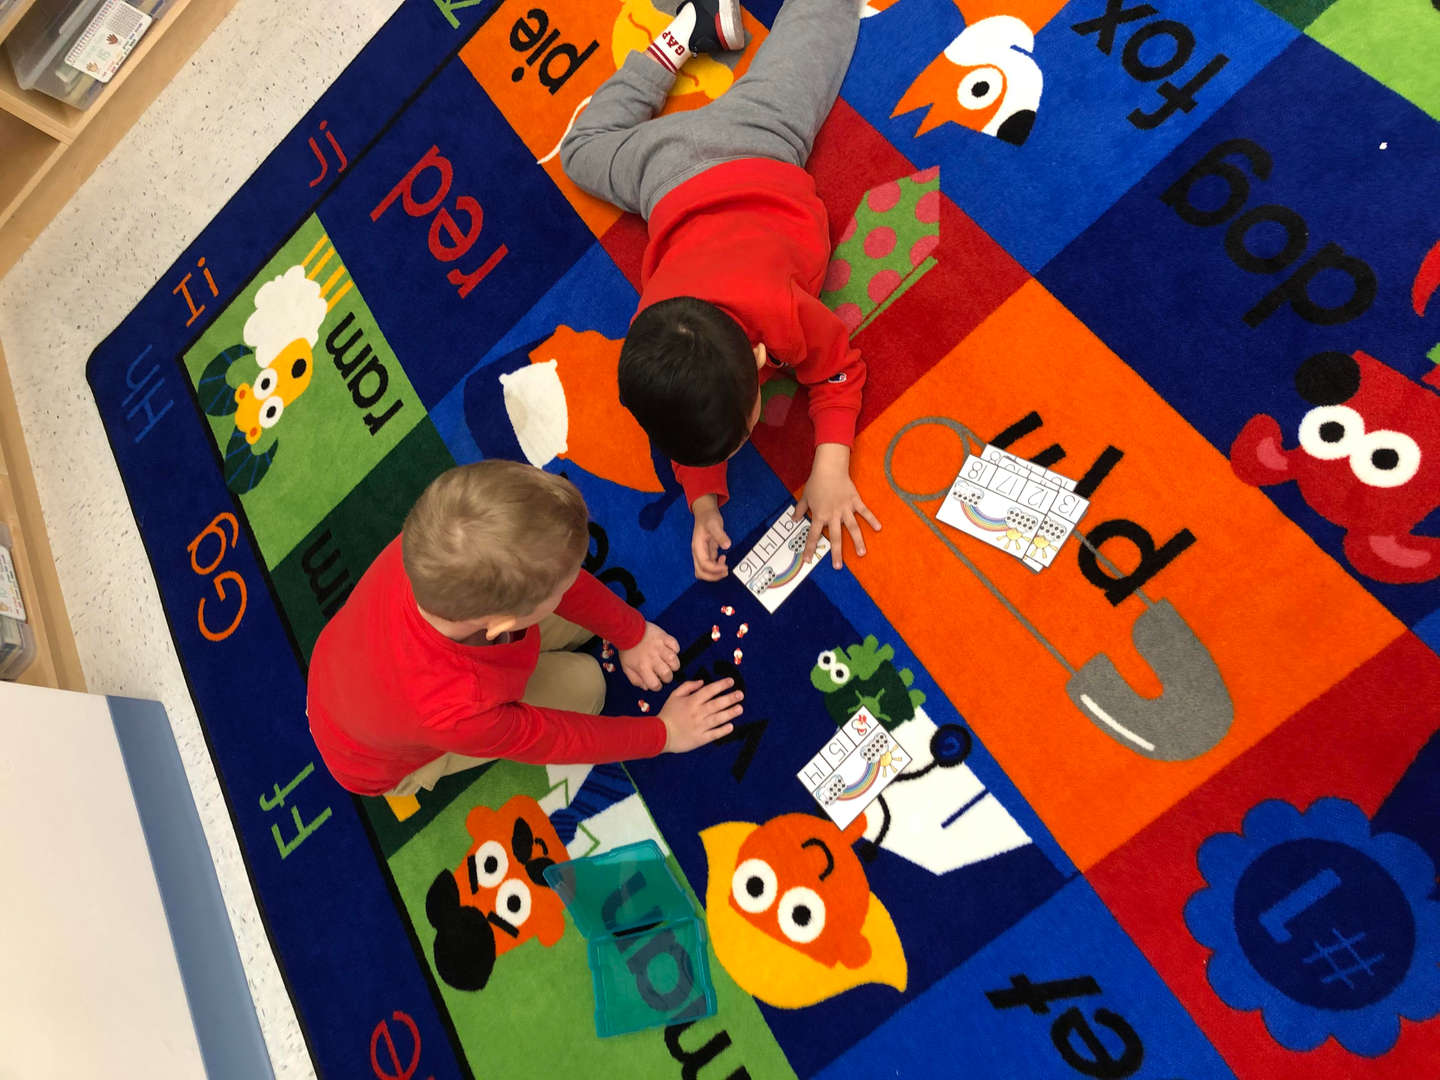 Students engaging in center time on the carpet area